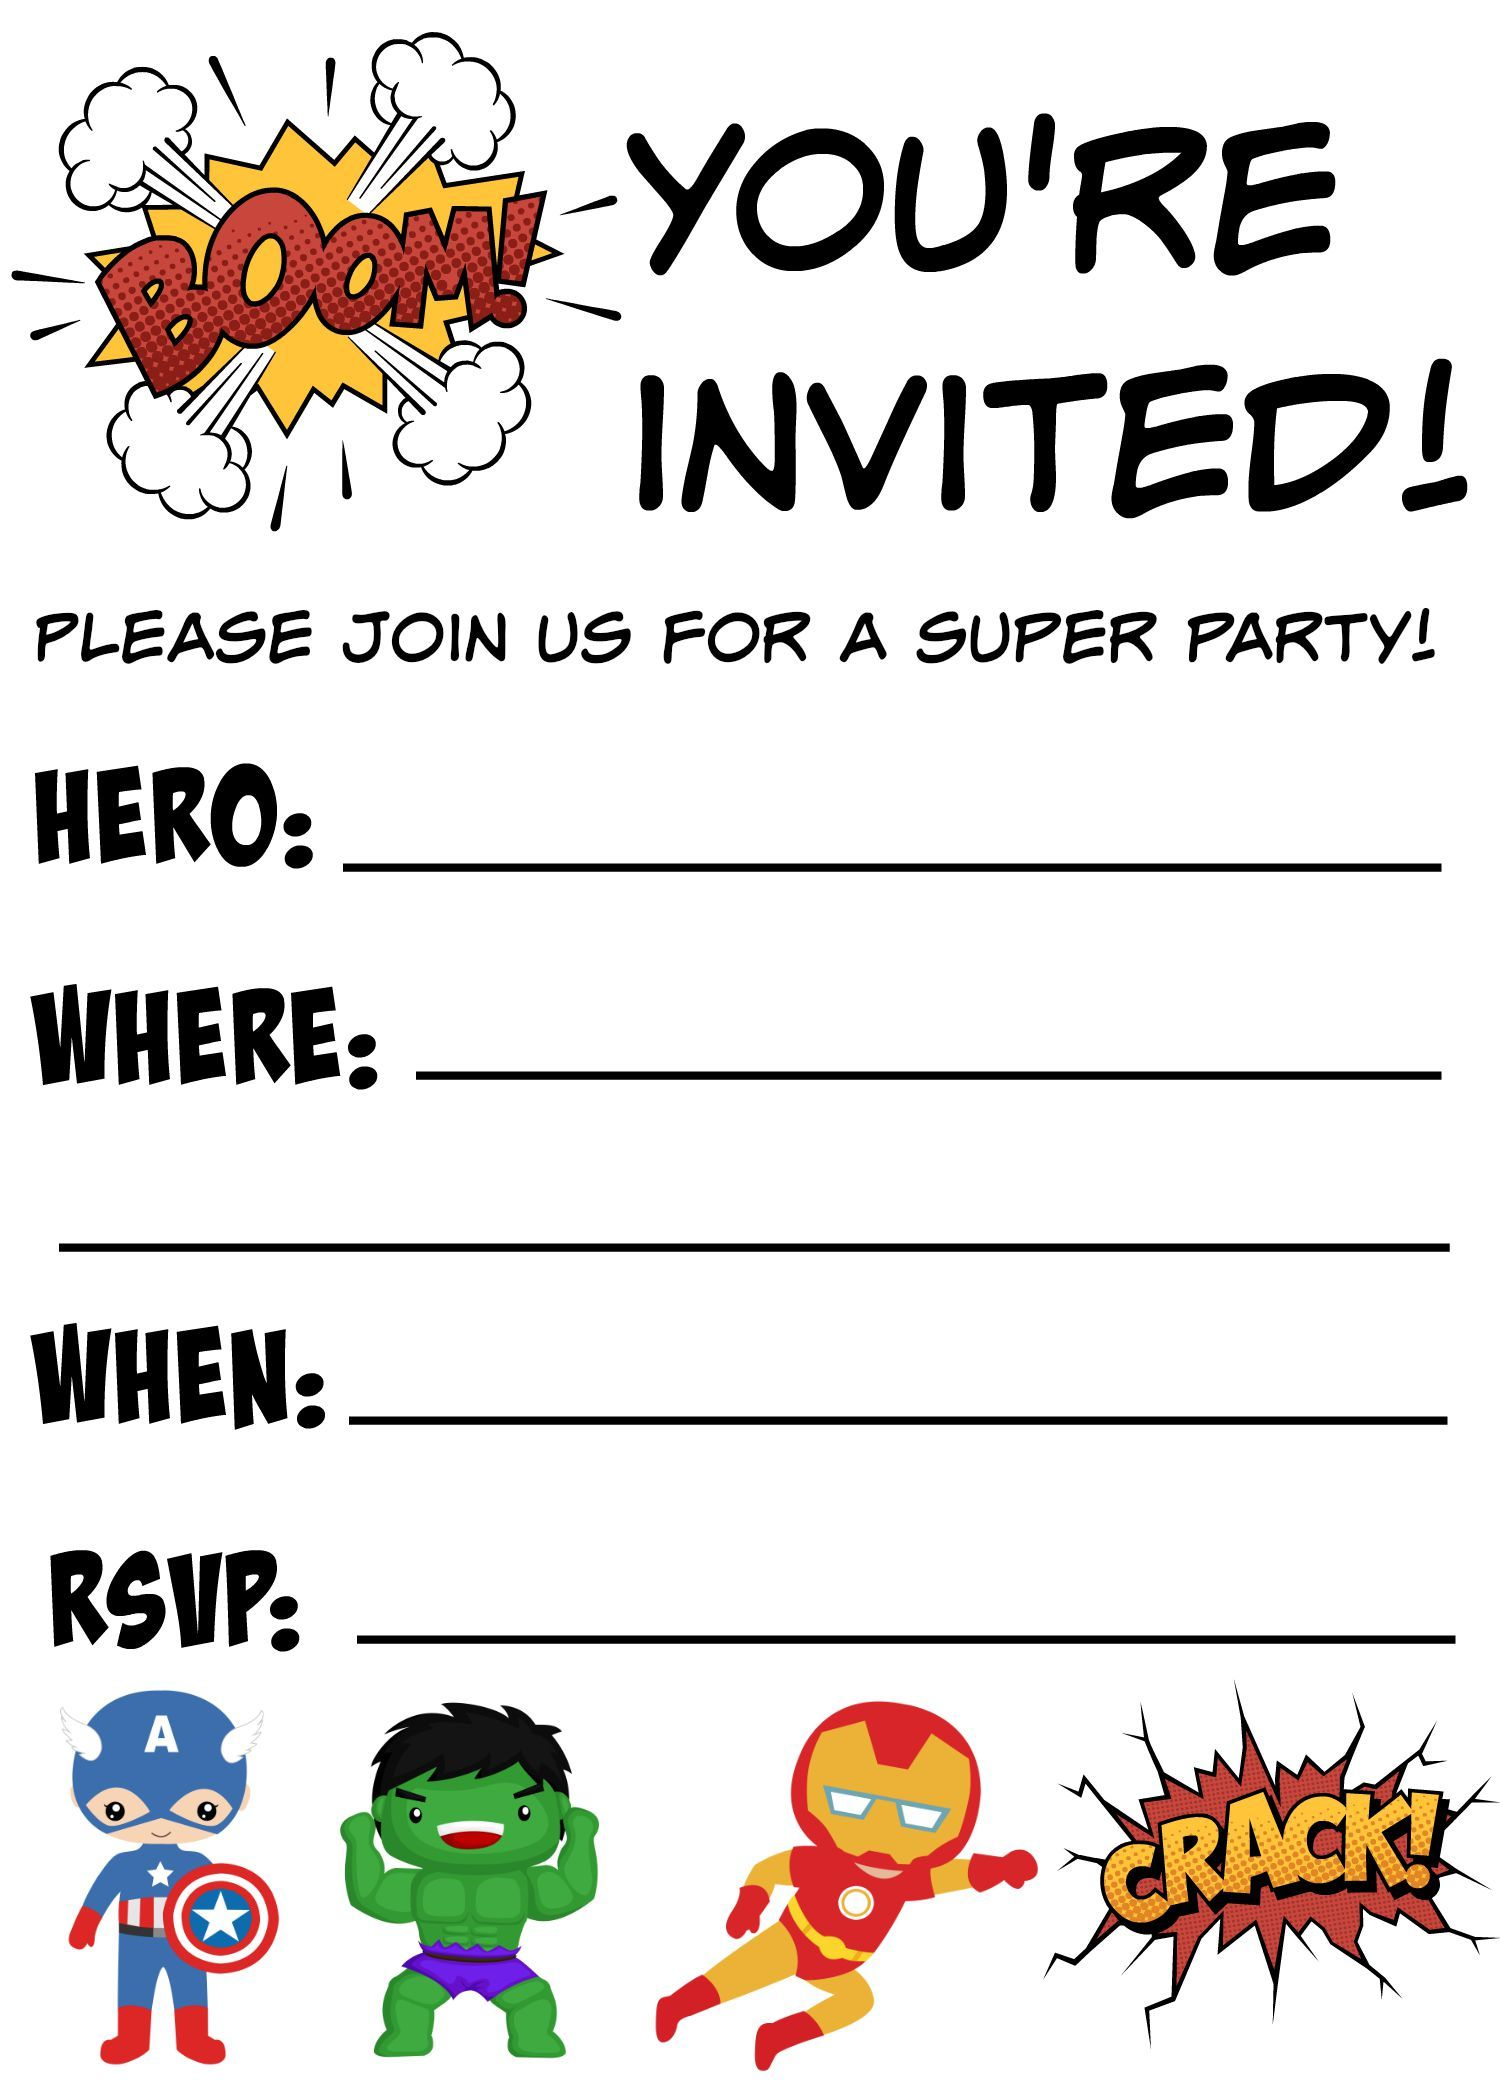 printable superhero birthday invitations disney superhero these printable birthday invitations are perfect for your next disney marvel avengers or superhero birthday party these and the invites will